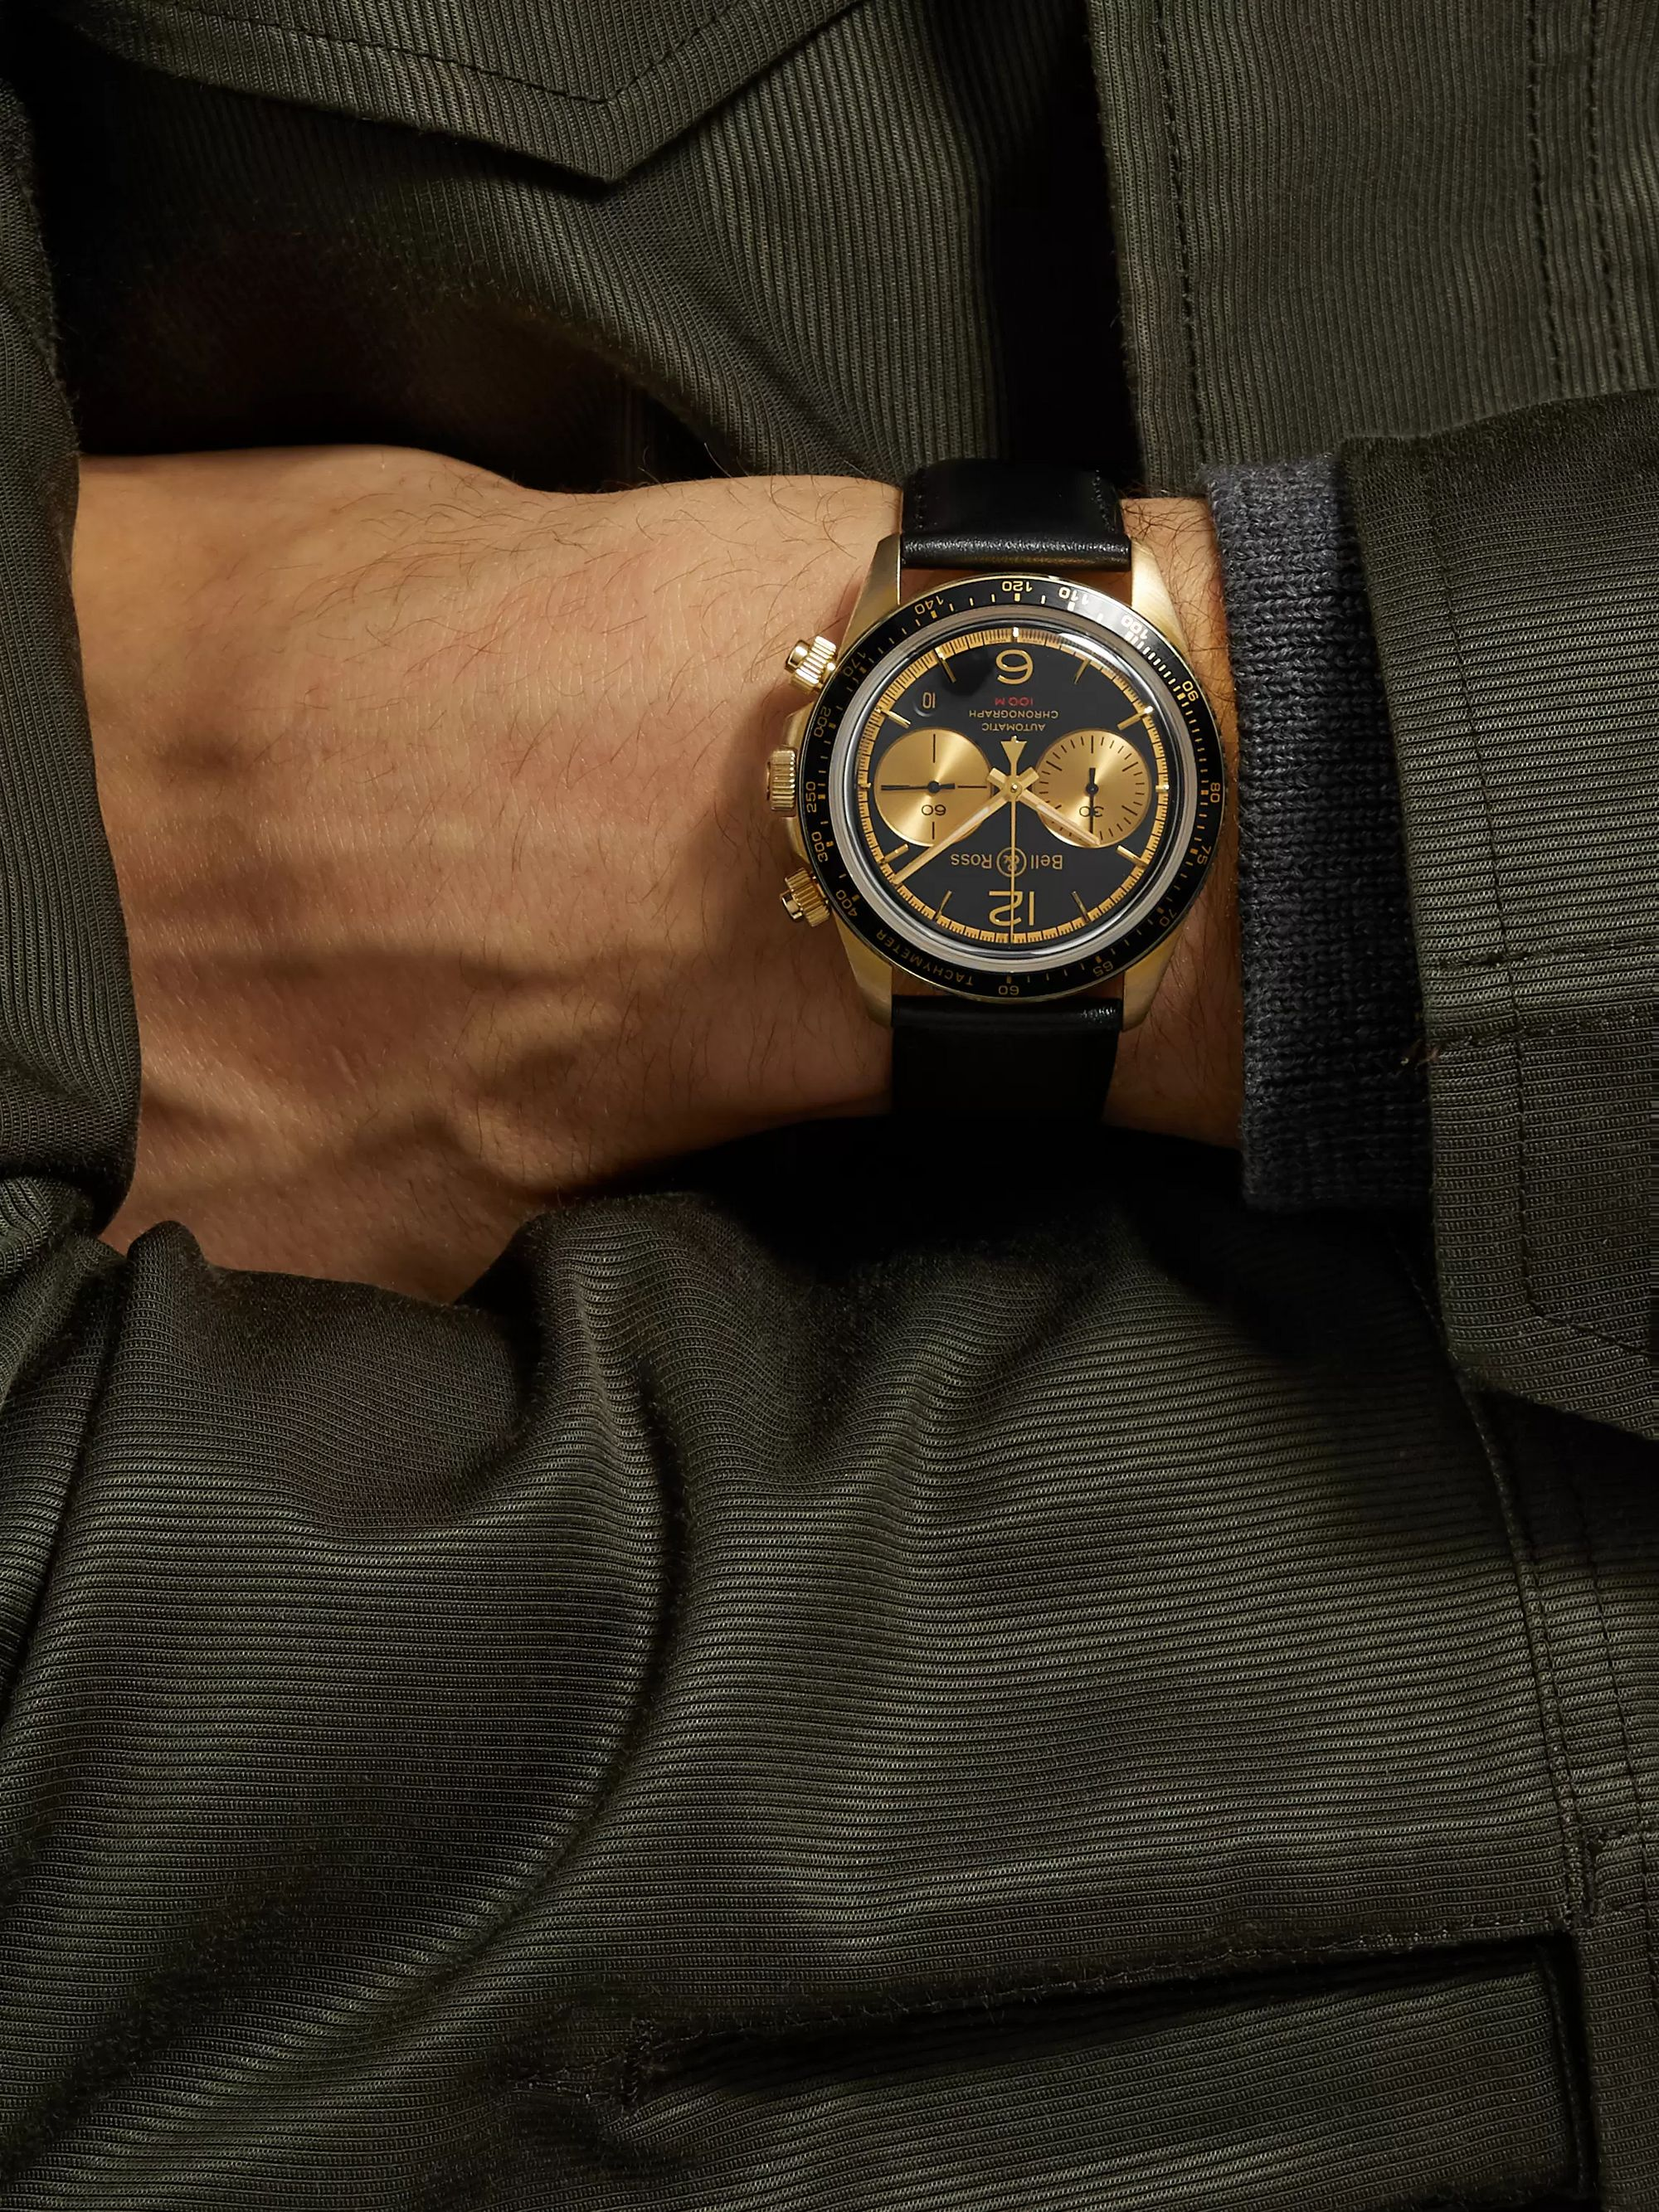 Bell & Ross BR V2-94 Bellytanker Limited Edition Automatic Chronograph 41mm Bronze and Leather Watch